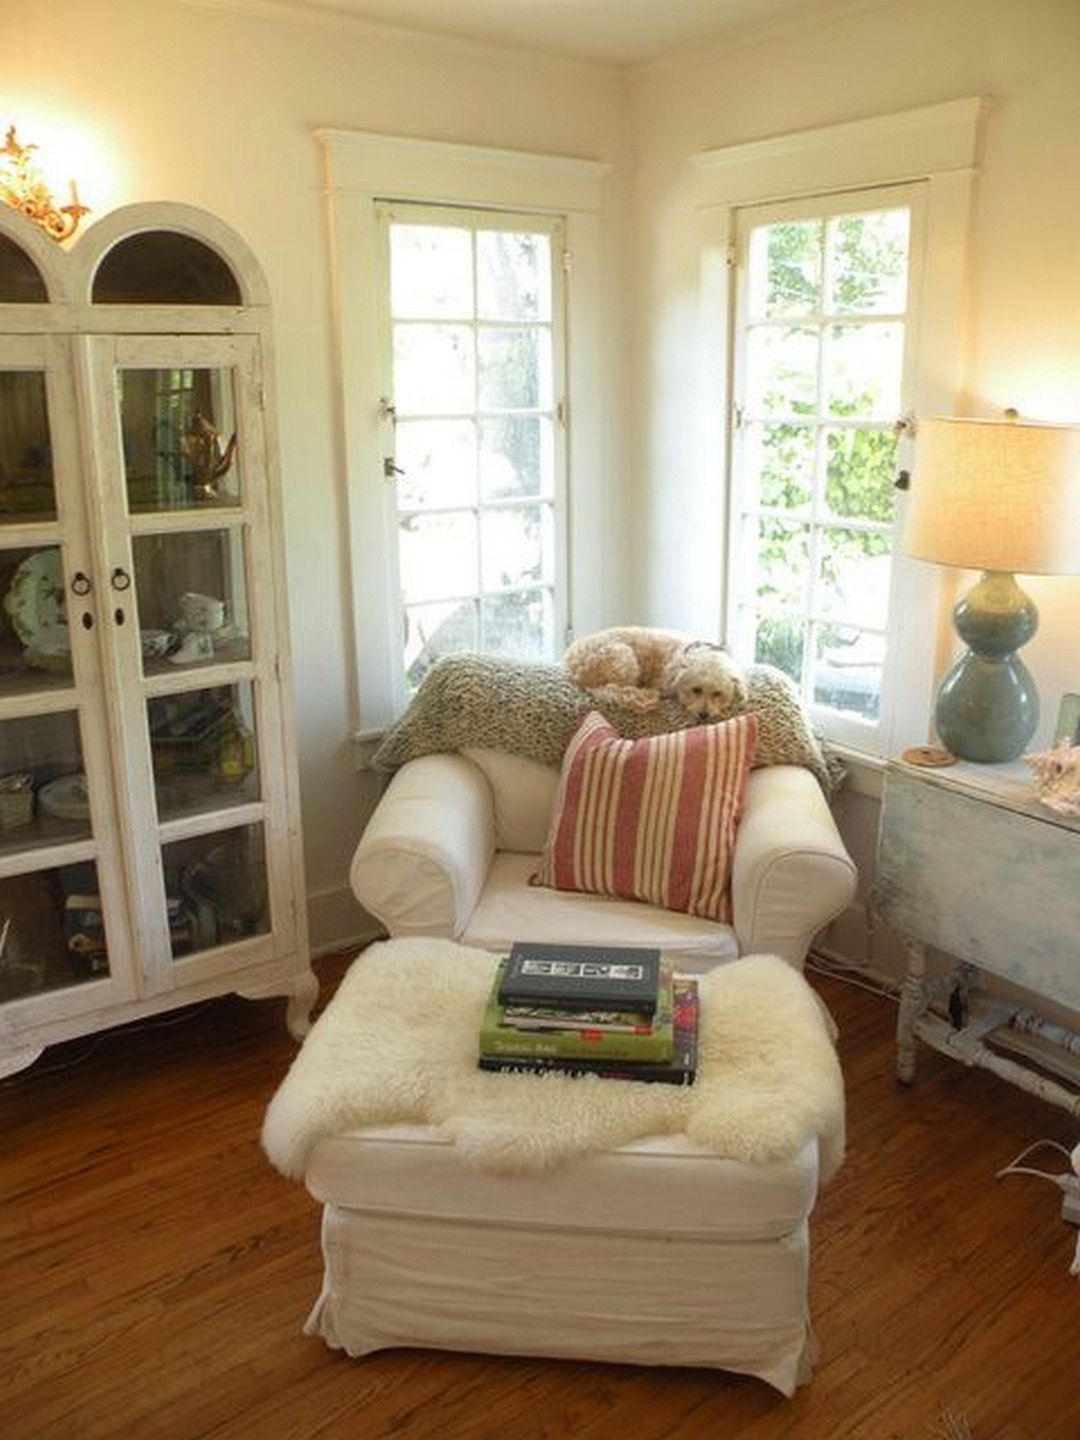 Cozy Reading Room Design Ideas: GATES: A Renovated House With Expansive Rooms And Stunning